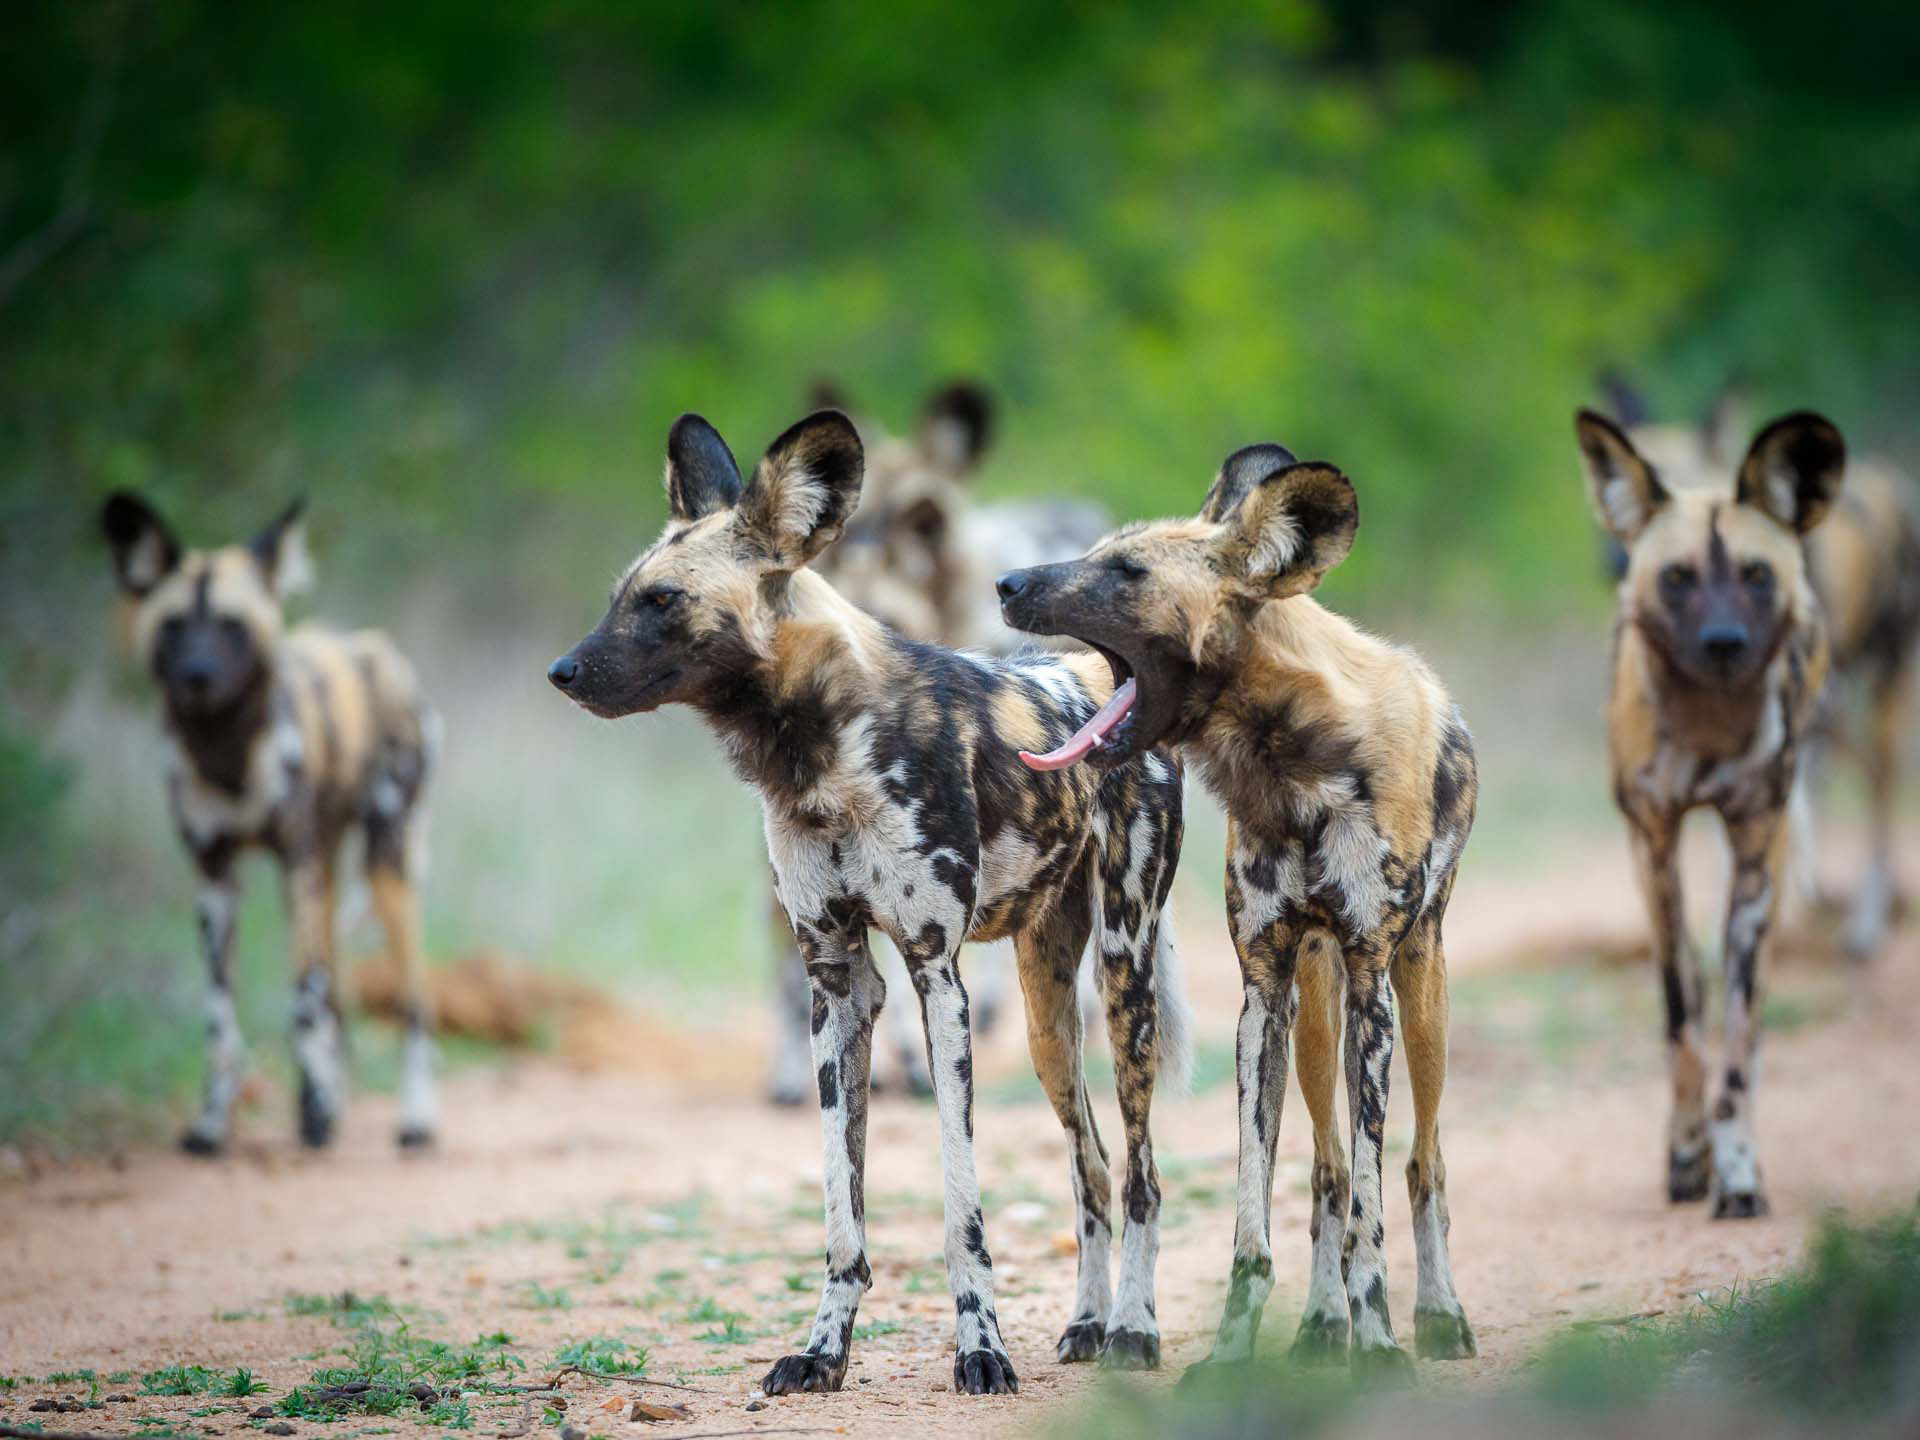 Tanda Tula - wild dogs on the hunt in the Greater Kruger